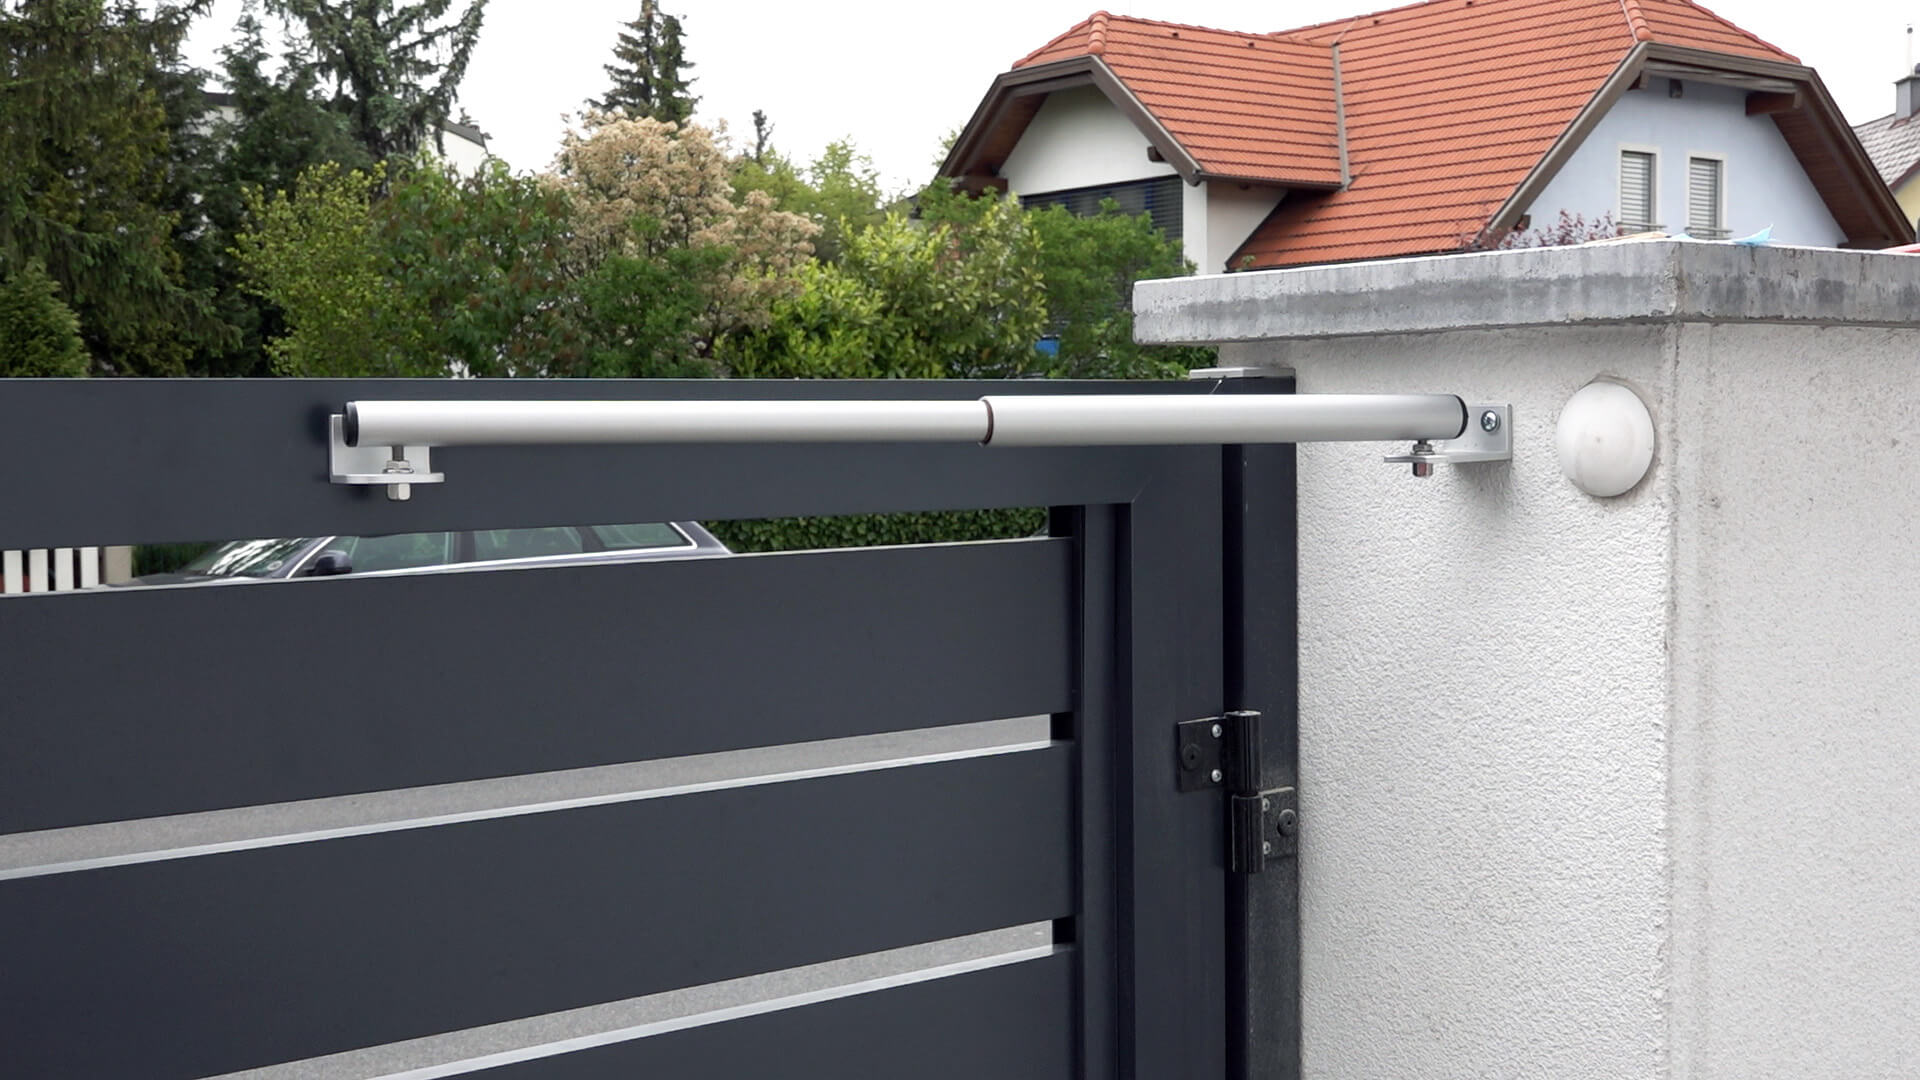 Mounting example type 5 - Wall mounting with side located door hinges